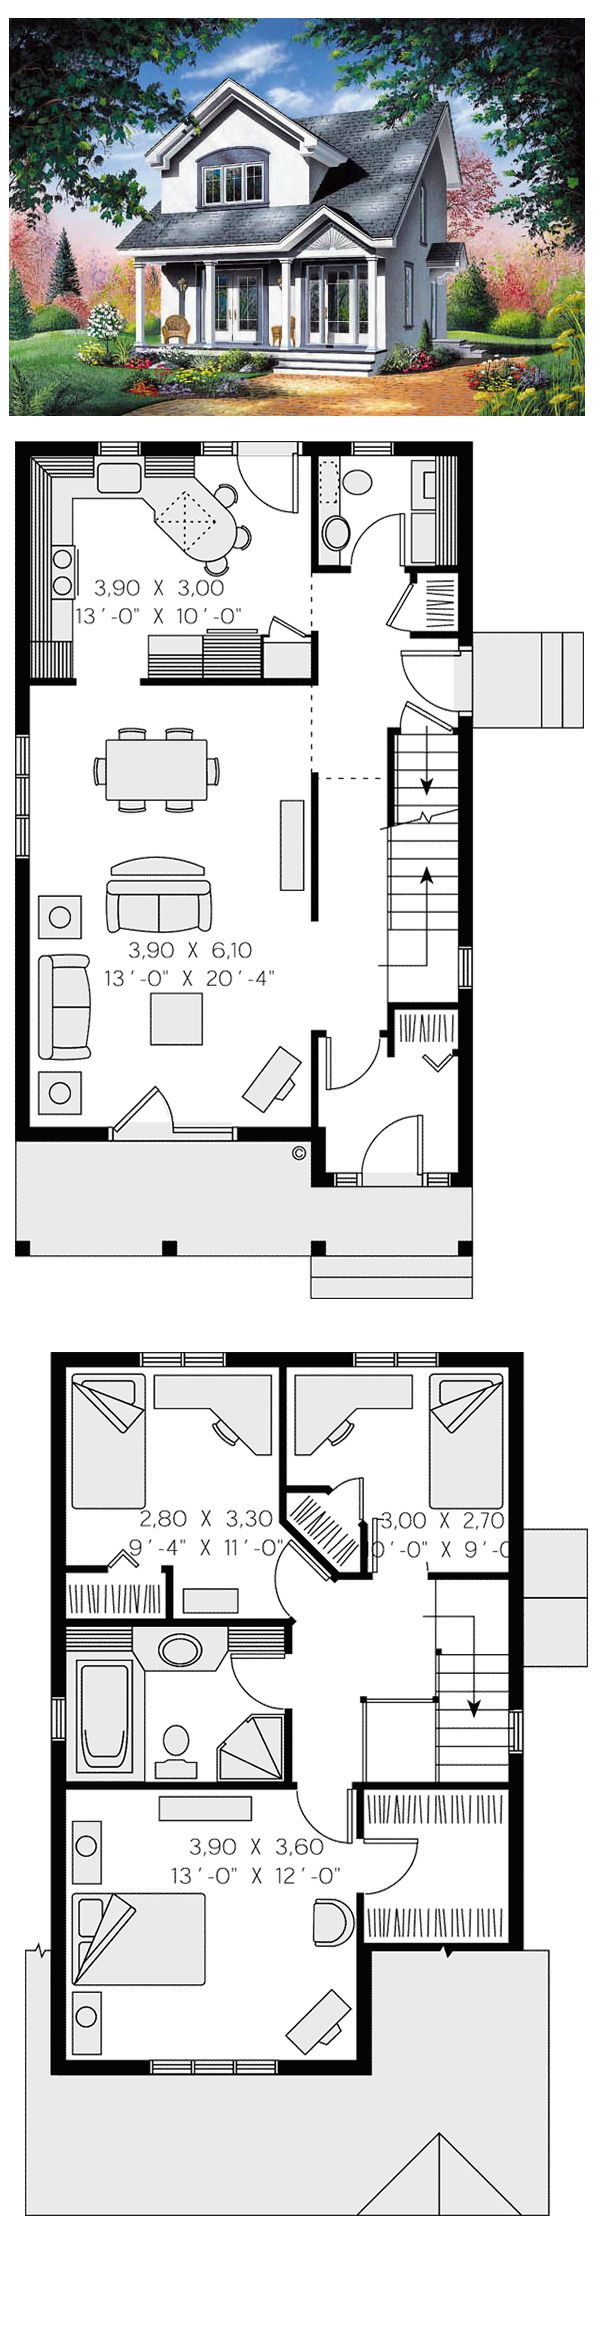 Small 3 Bedroom Cabin Plans 1000 Ideas About Sims House On Pinterest Sims 4 Houses Layout